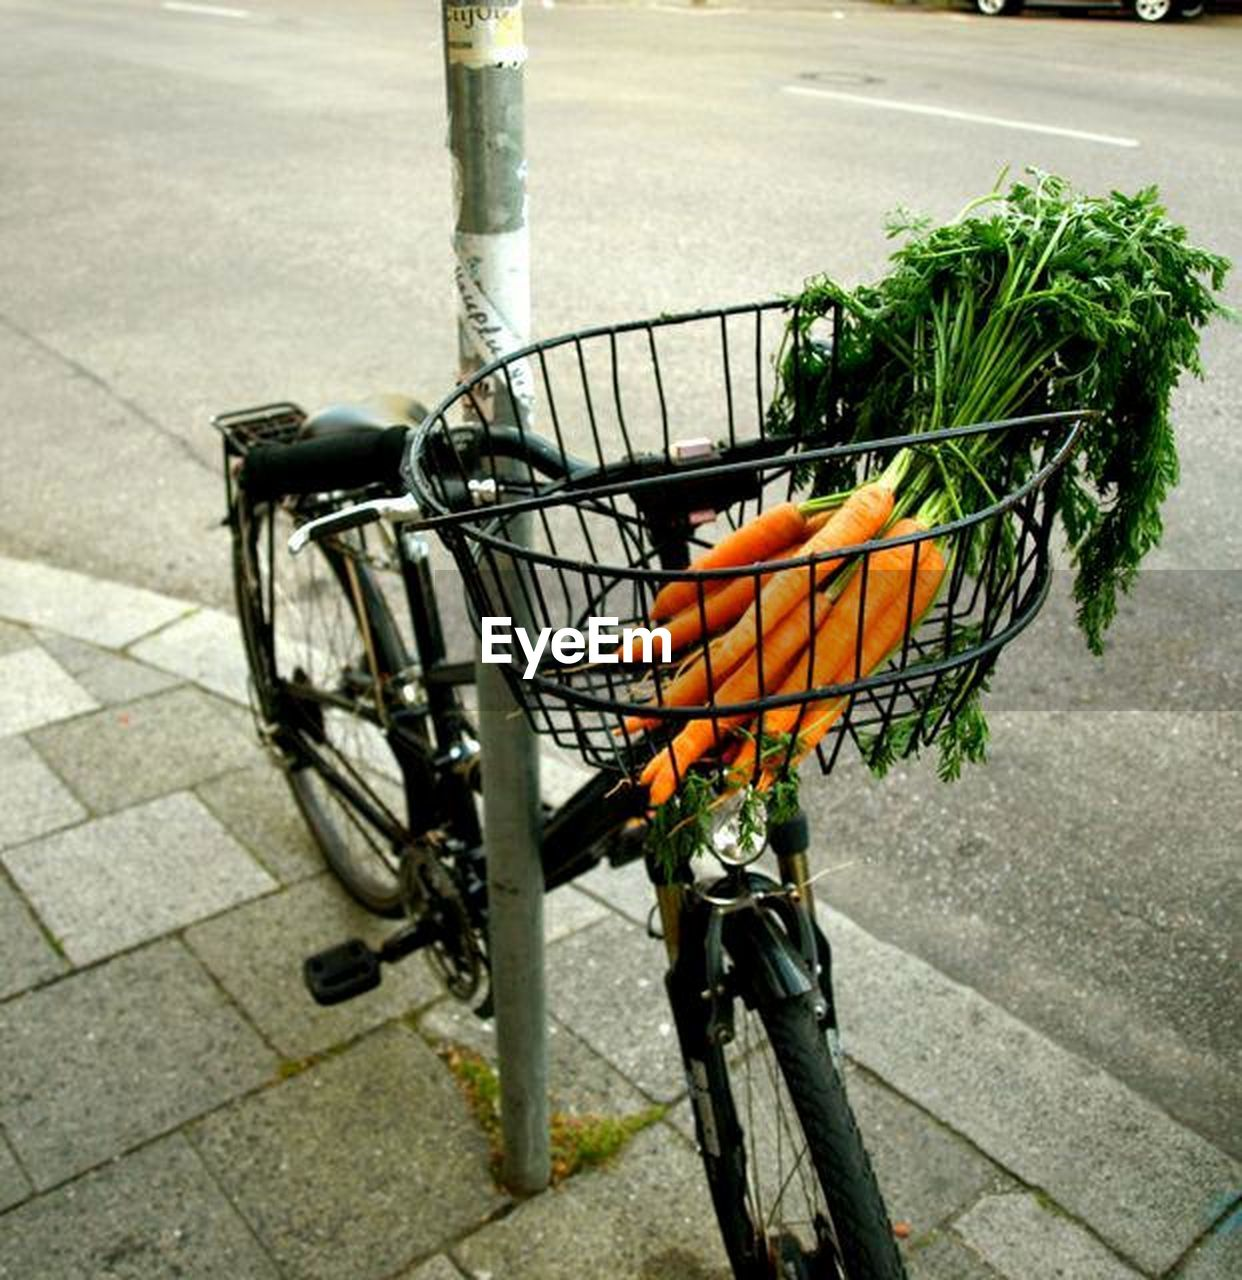 bicycle, city, basket, day, transportation, no people, food, bicycle basket, street, food and drink, high angle view, outdoors, healthy eating, container, land vehicle, root vegetable, carrot, mode of transportation, vegetable, road